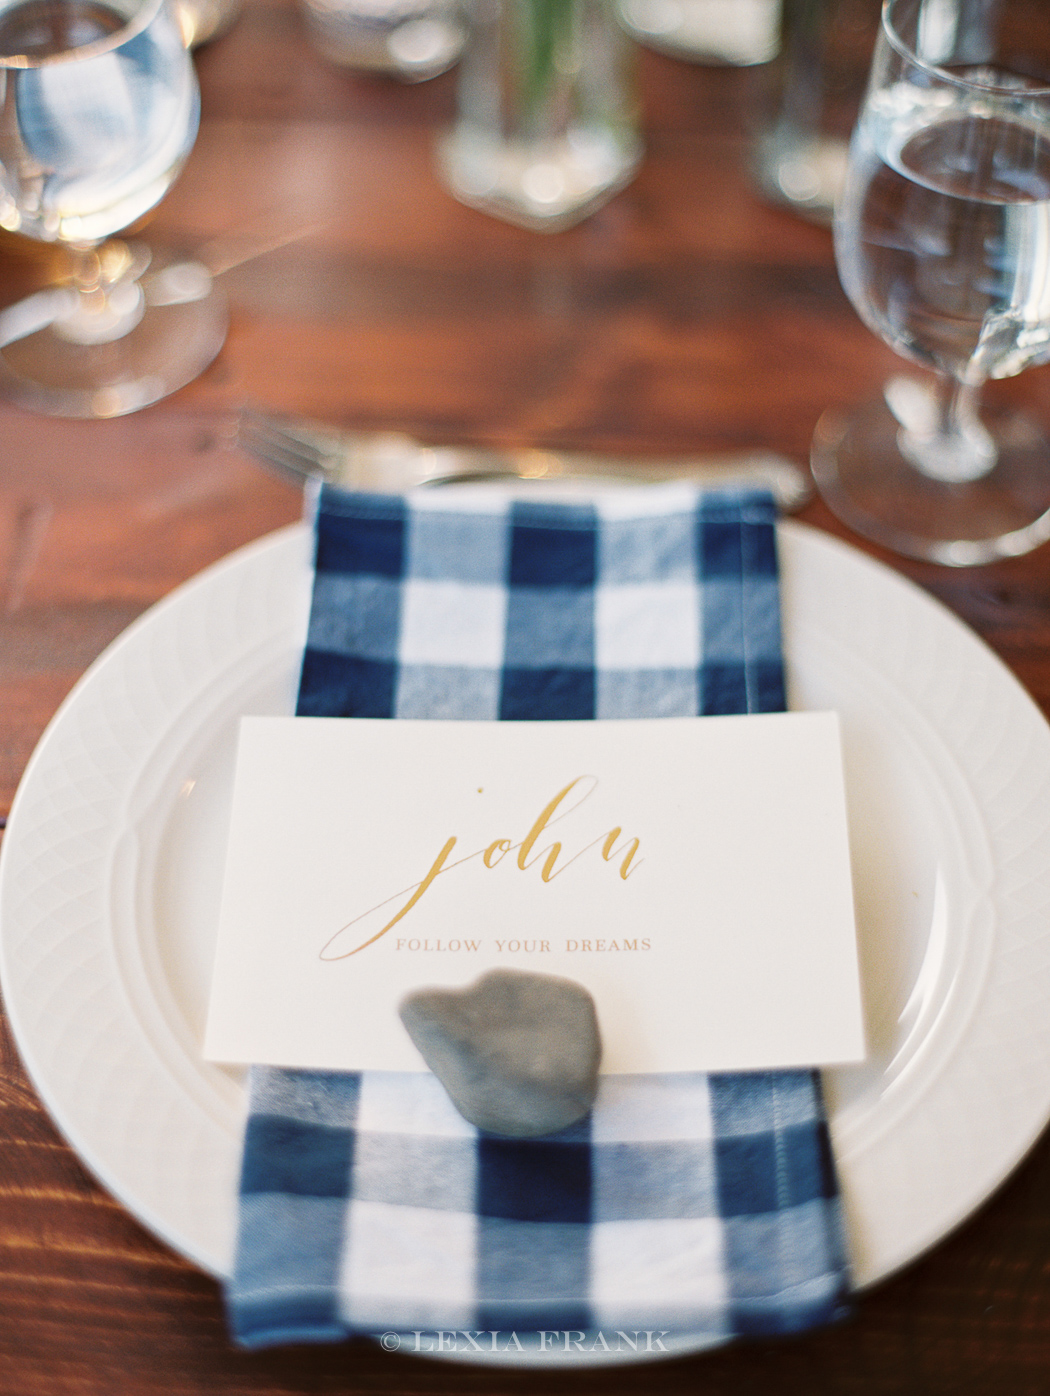 Destination Wedding Photographer Lexia Frank - a portland oregon fine art film photographer- photographed this wedding at camp wandawega in wisconsin for Camp Wedding by Cherry Blossom Events  www.lexiafrank.com plaid napkin, gold calligraphy, rock placecard, formal picnick, gourmet luncheon ideas  Image  EDIT  REMOVE